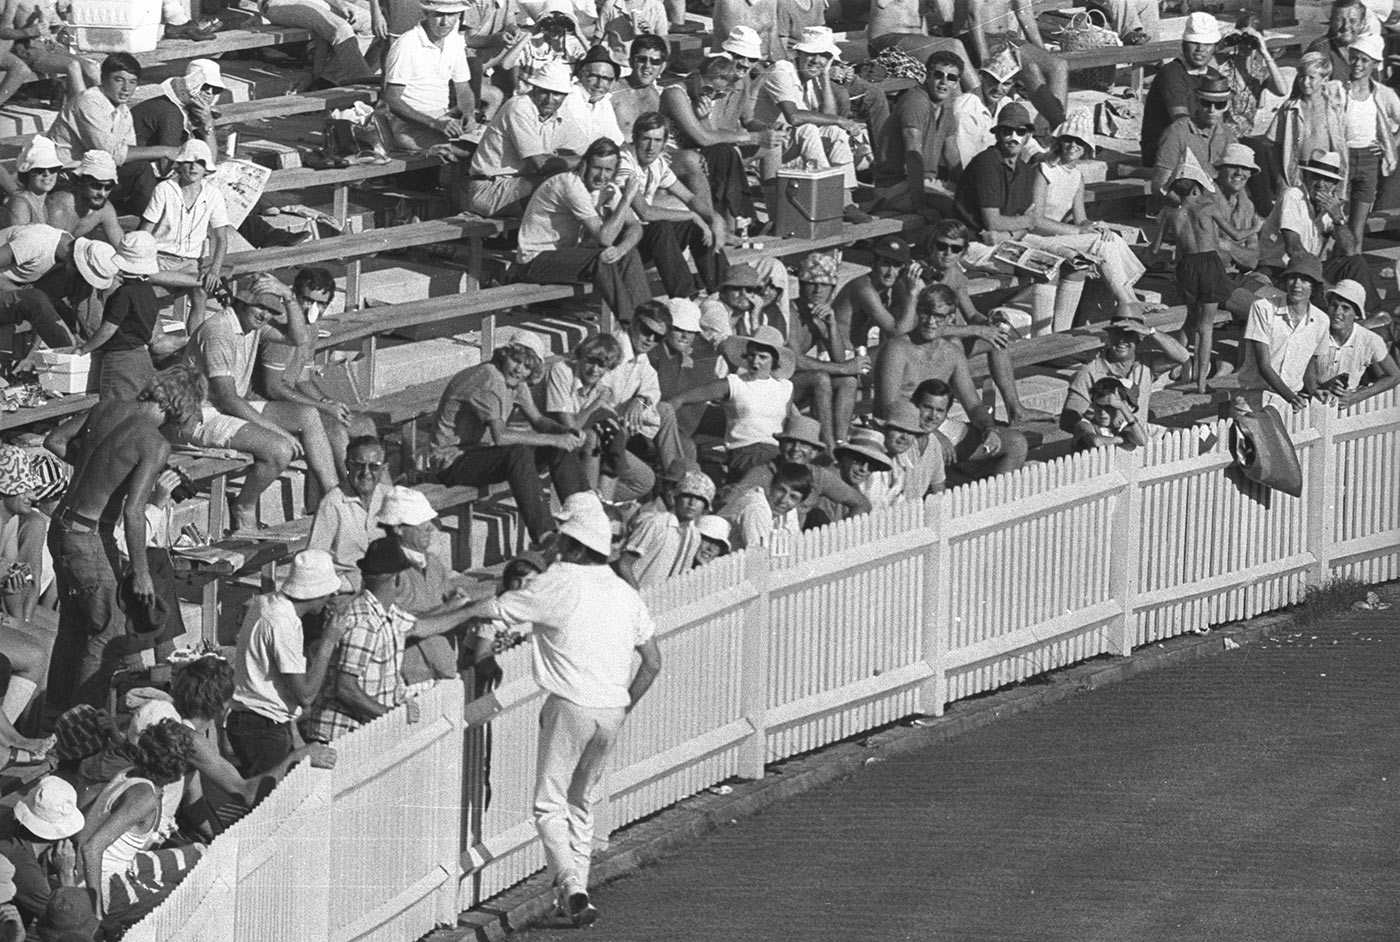 Snow has his arm grabbed by a spectator the day after he skulled Terry Jenner in the seventh Test of the 1970-71 Ashes